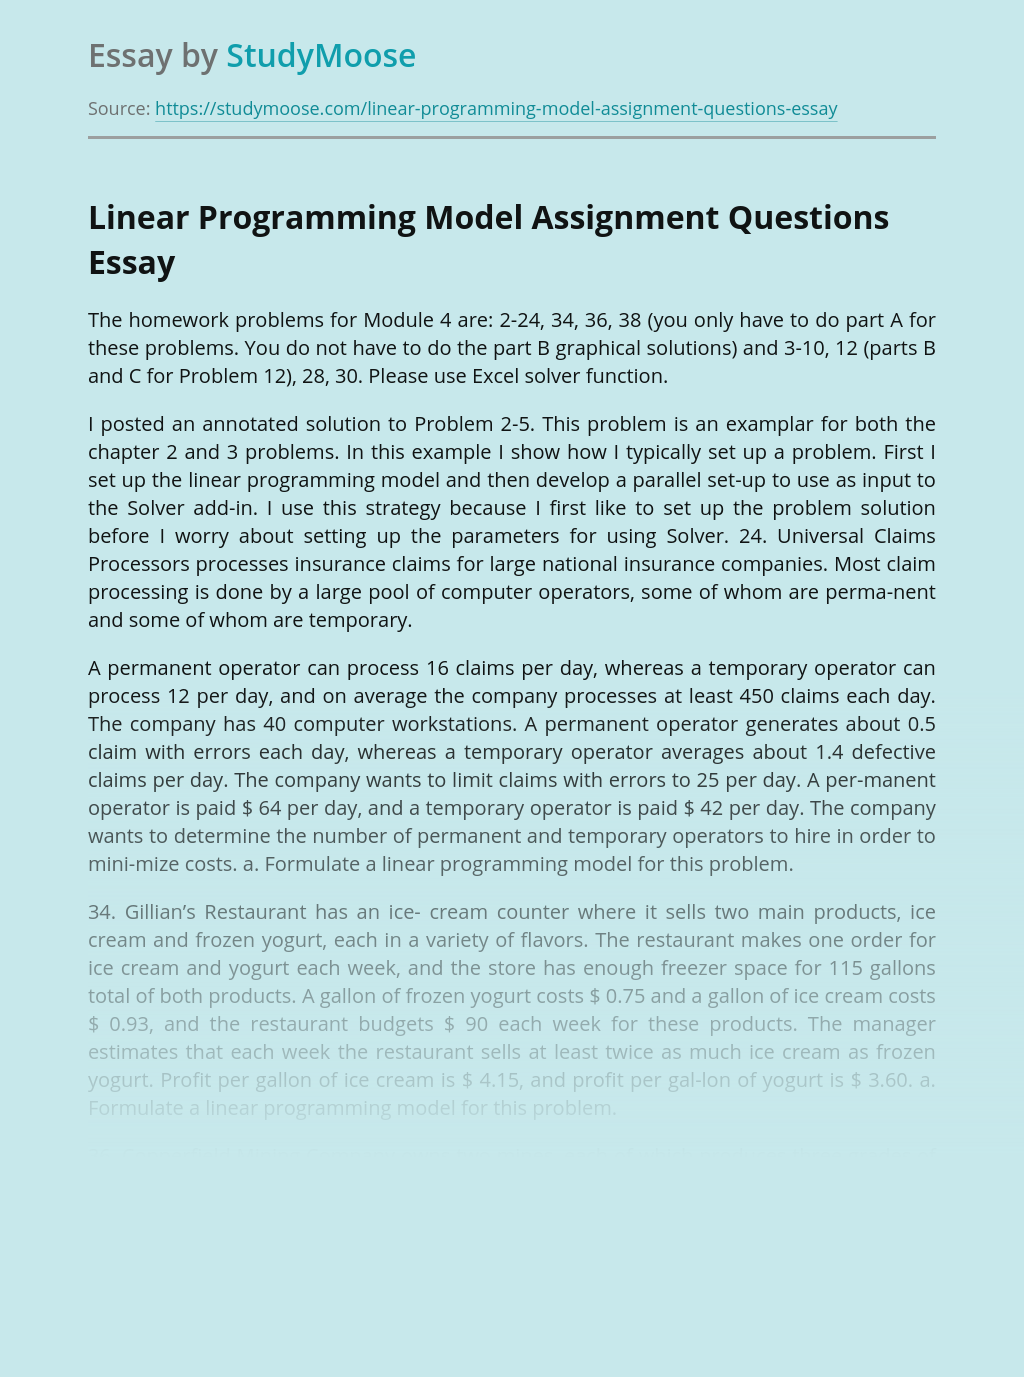 Linear Programming Model Assignment Questions